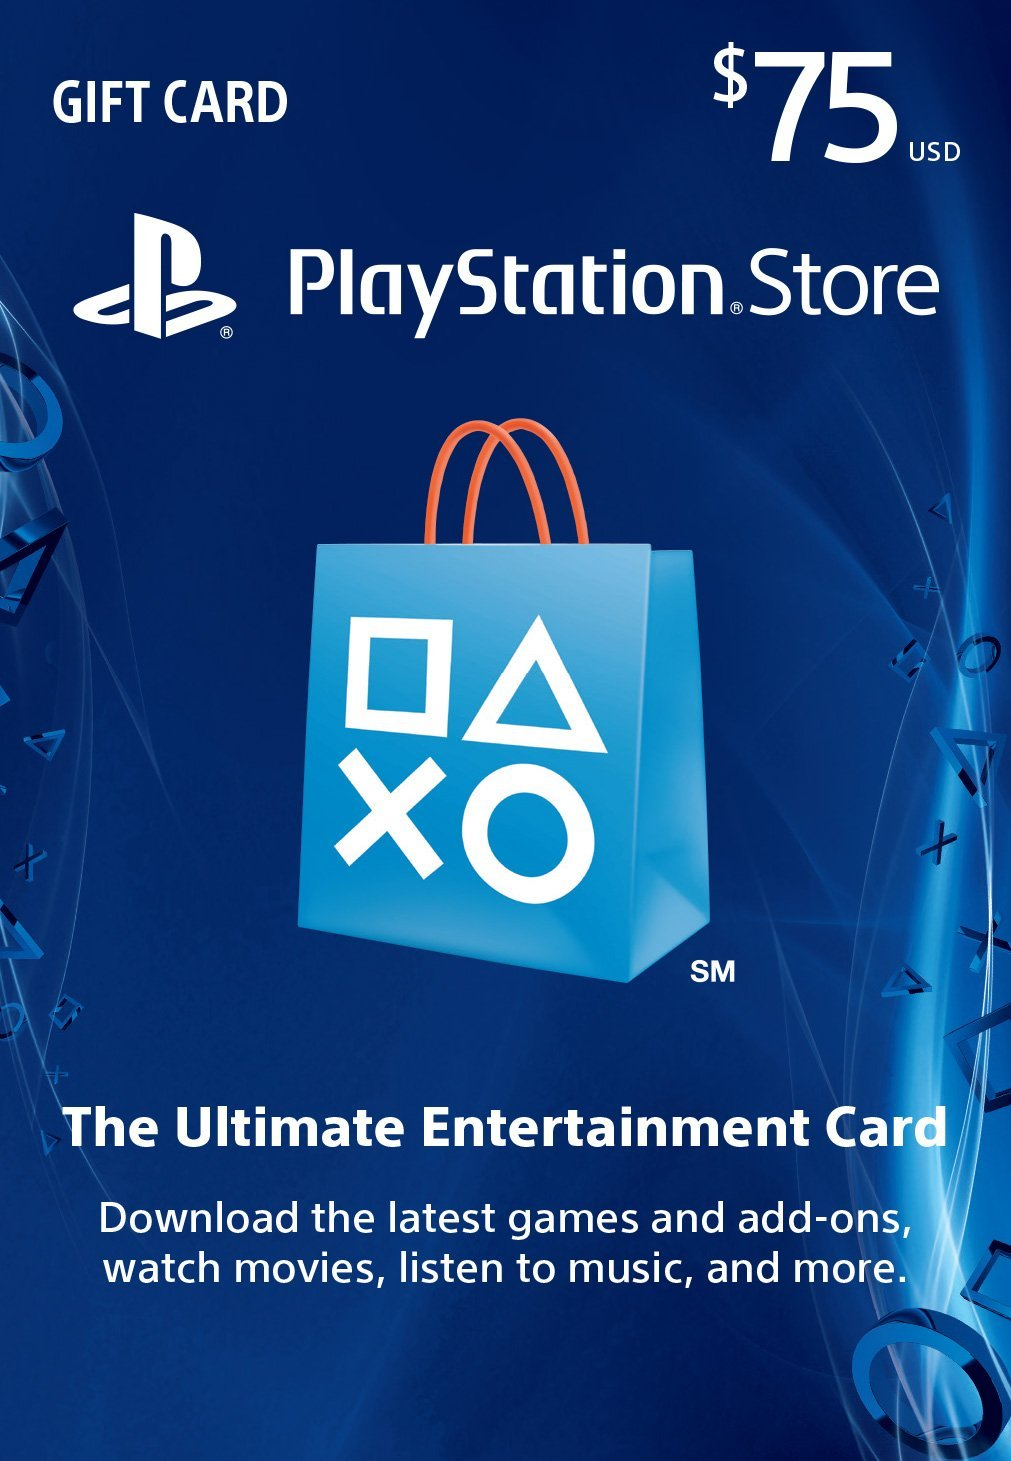 PSN Gift Card Code USA $75 for PS4, PS3, PS Vita